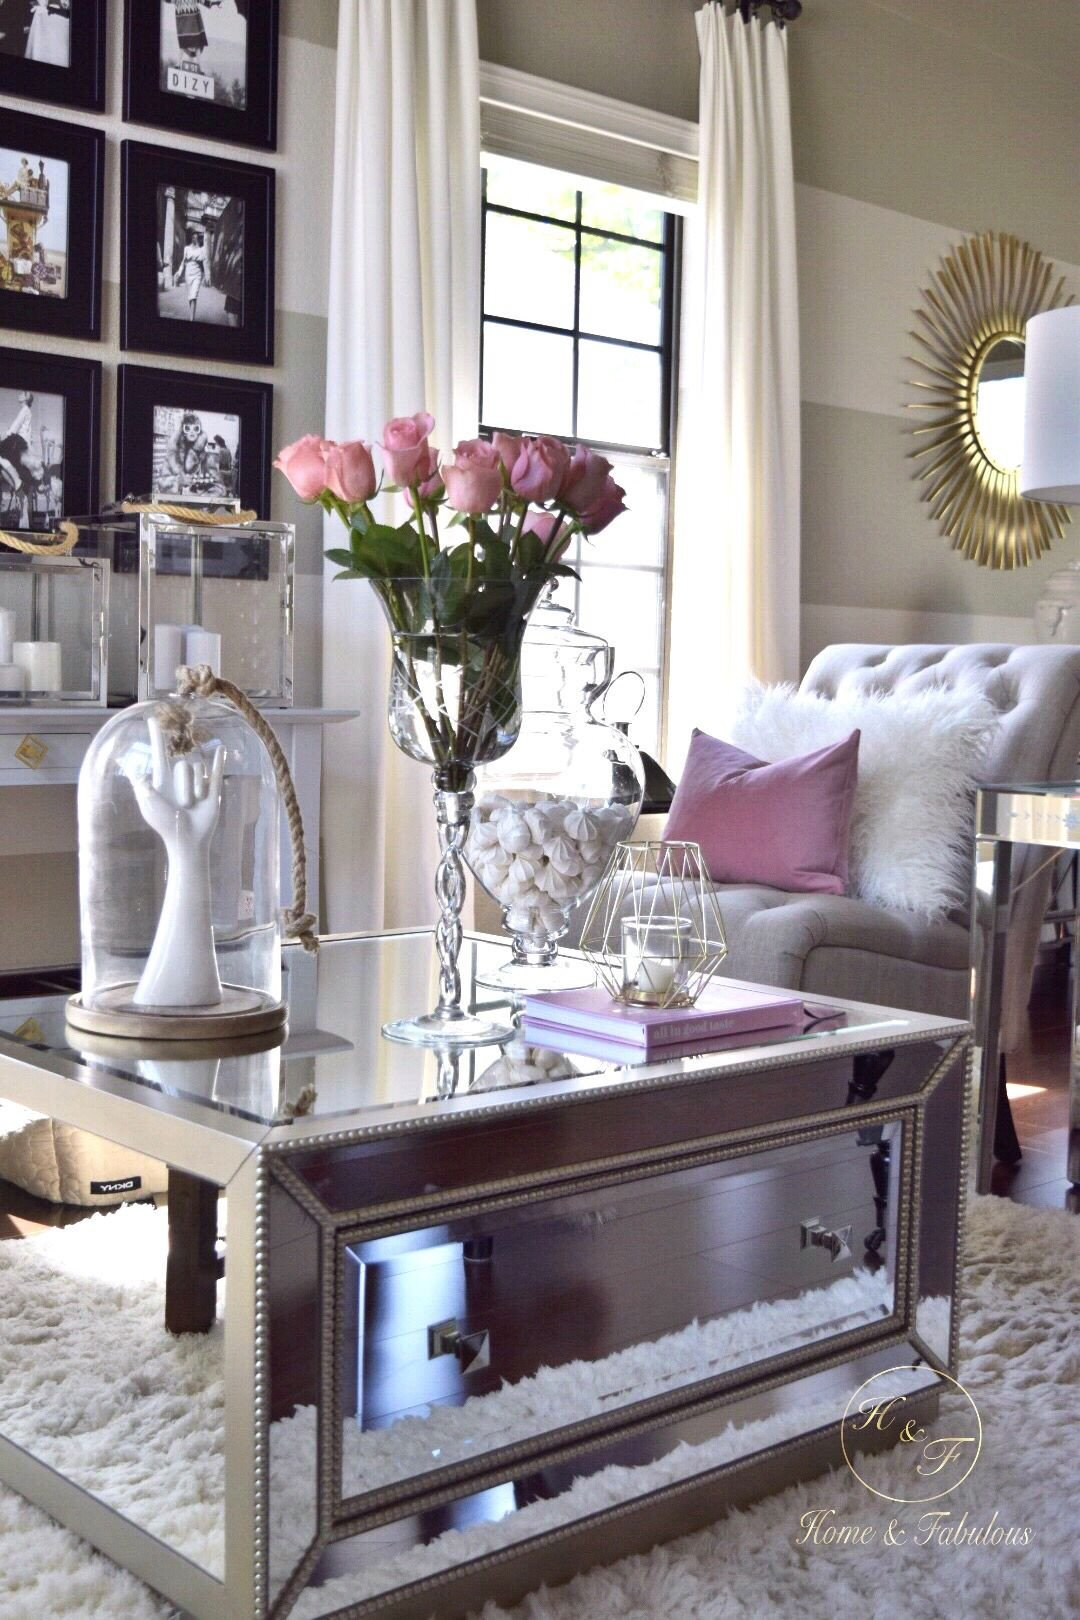 Living Room Center Table Decor New It S Amazing that I Can Find A Beautiful Coffee Table Like